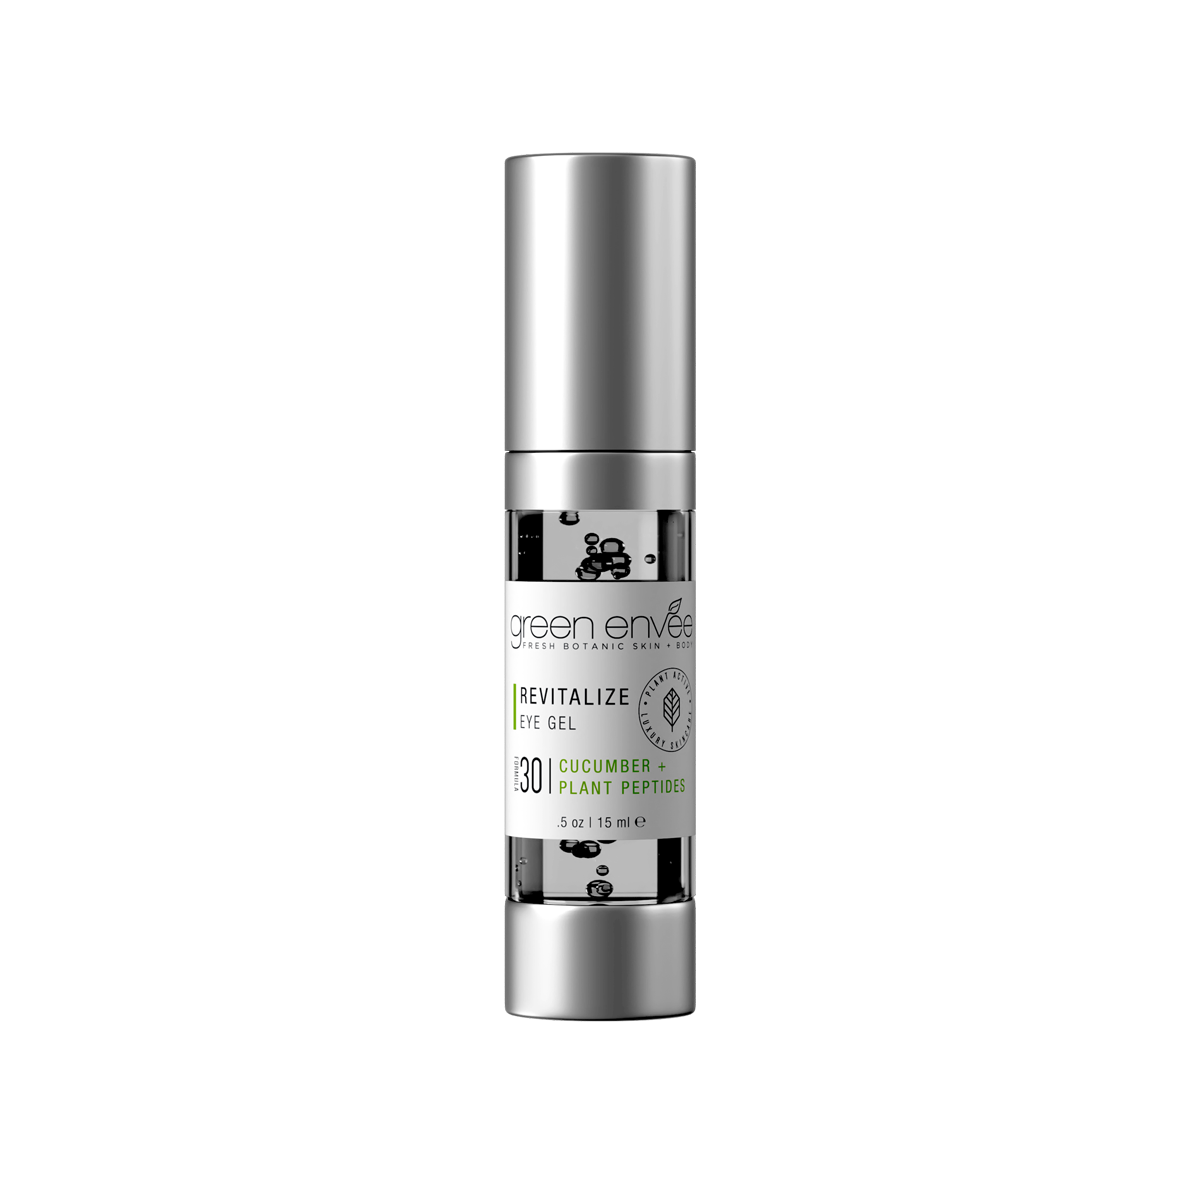 Green Envee Revitalize Eye Gel